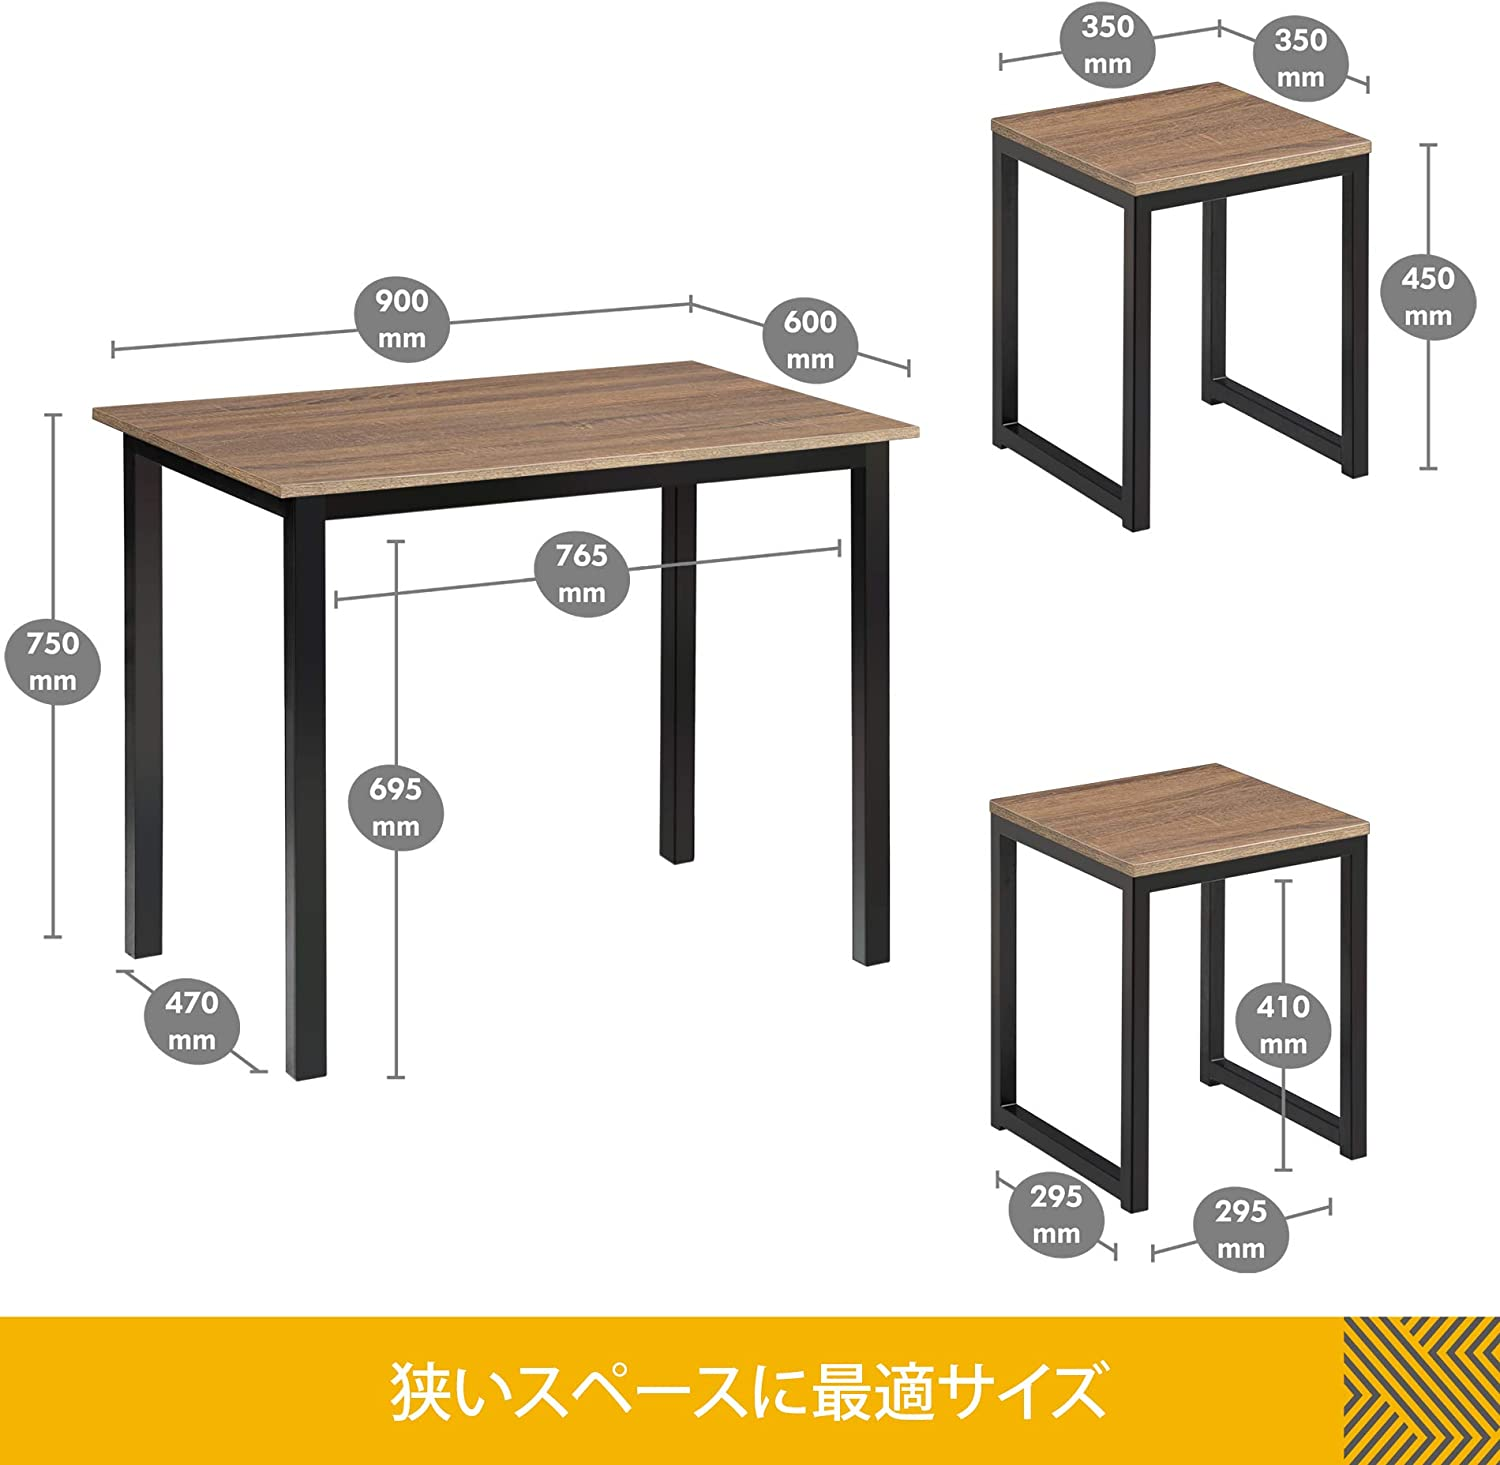 Buy HOMURY 9 Piece Dining Table Set with Two Stools, Compact ...